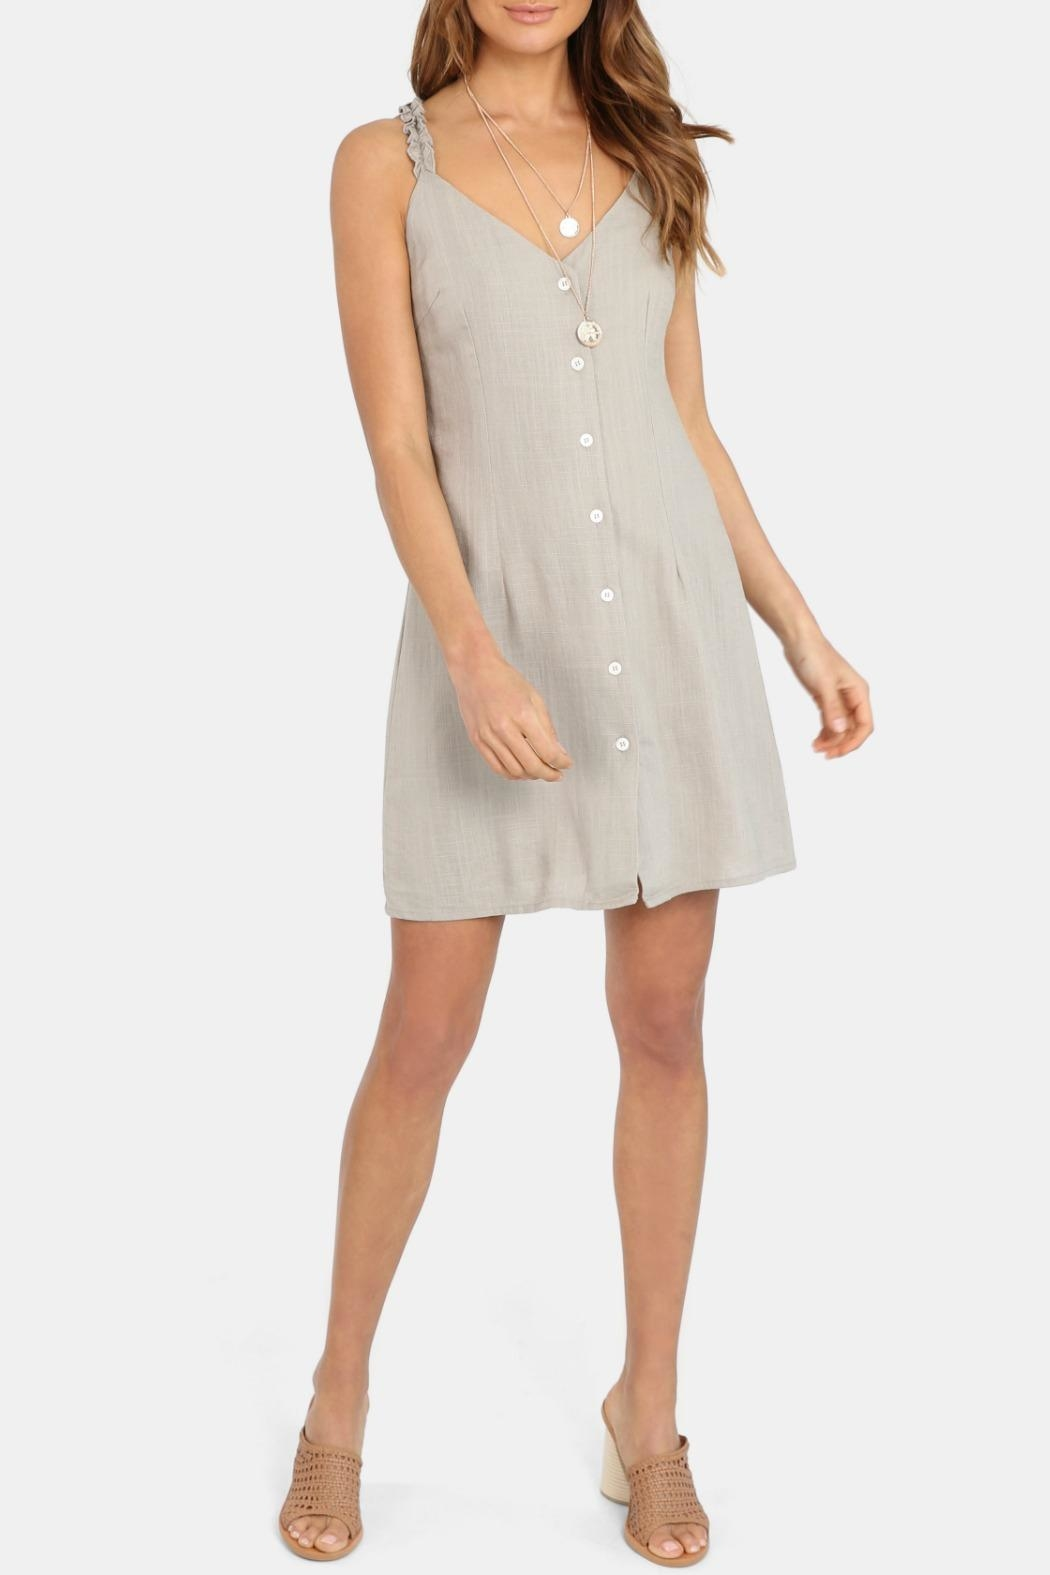 Lost in Lunar Sahara Mini Dress - Front Cropped Image